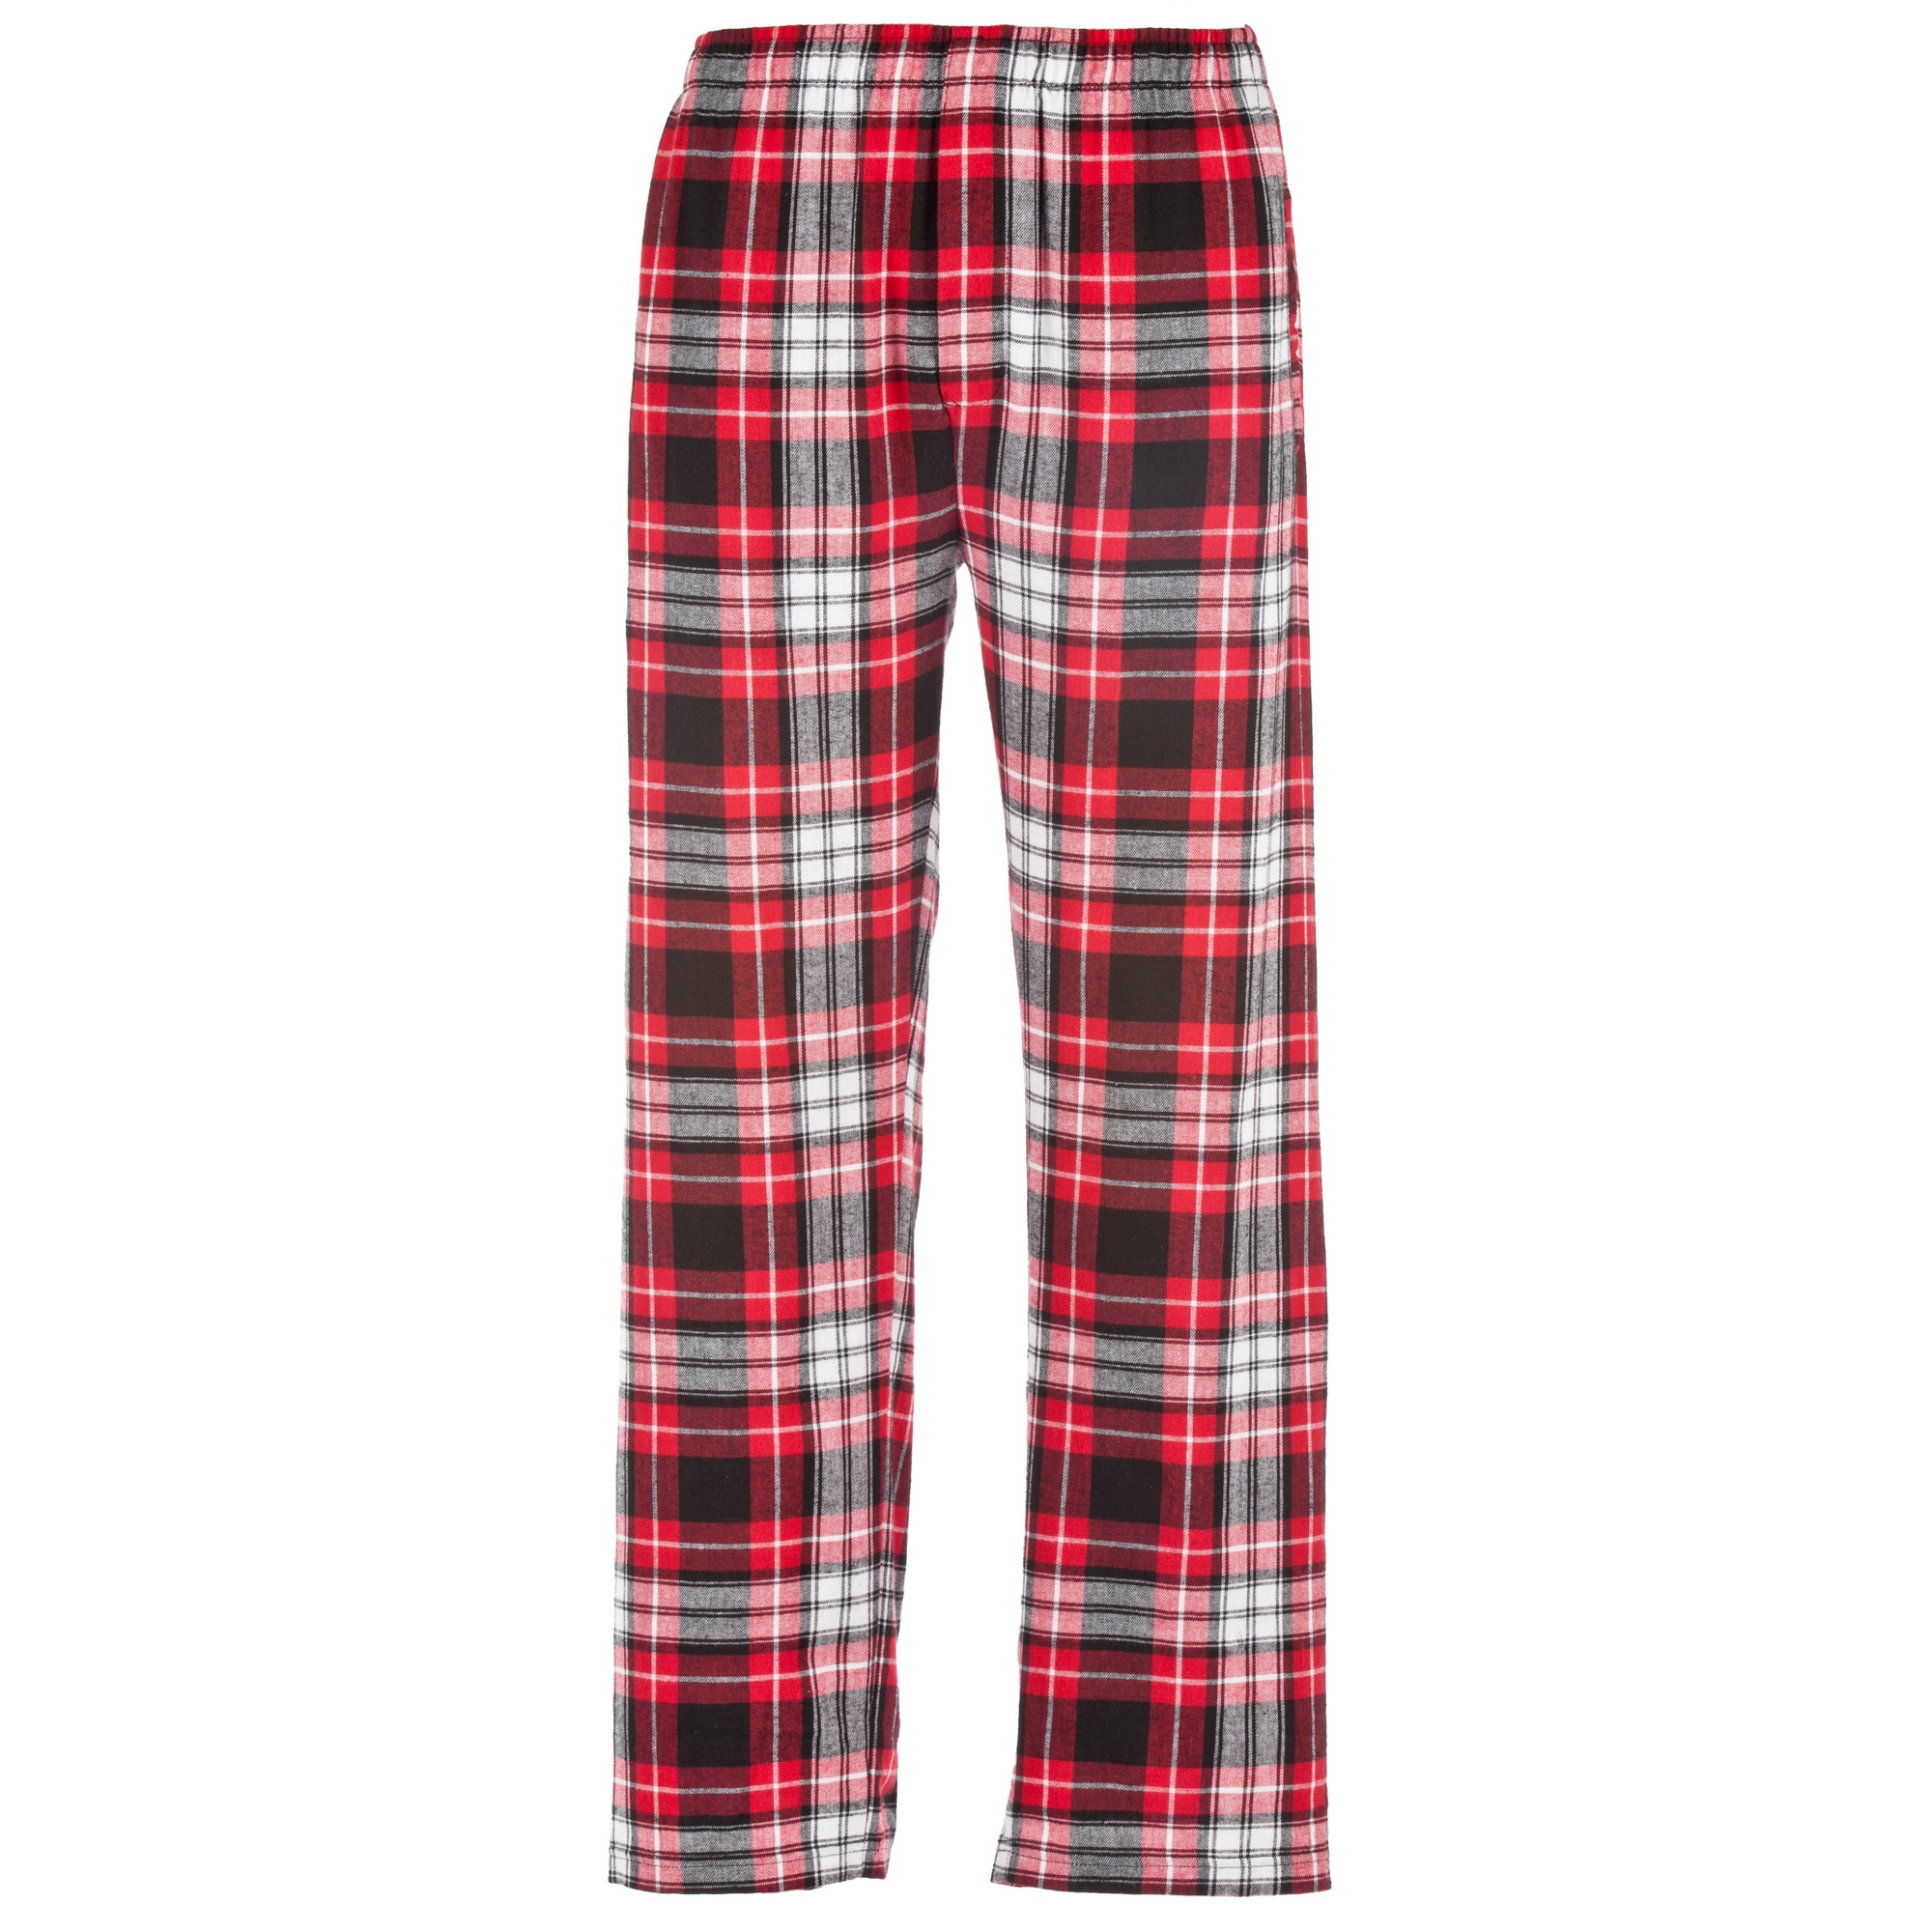 Navy Green Plaid Flannel Men's Pajama Pants % Cotton Button Fly Side Pockets. Brand New · Unbranded. $ Buy It Now. Free Shipping. Free Returns. Mens FLANNEL PAJAMA PANTS Lot of 6 Random Plaid/Patterned PJs S M L XL. Unbranded. .